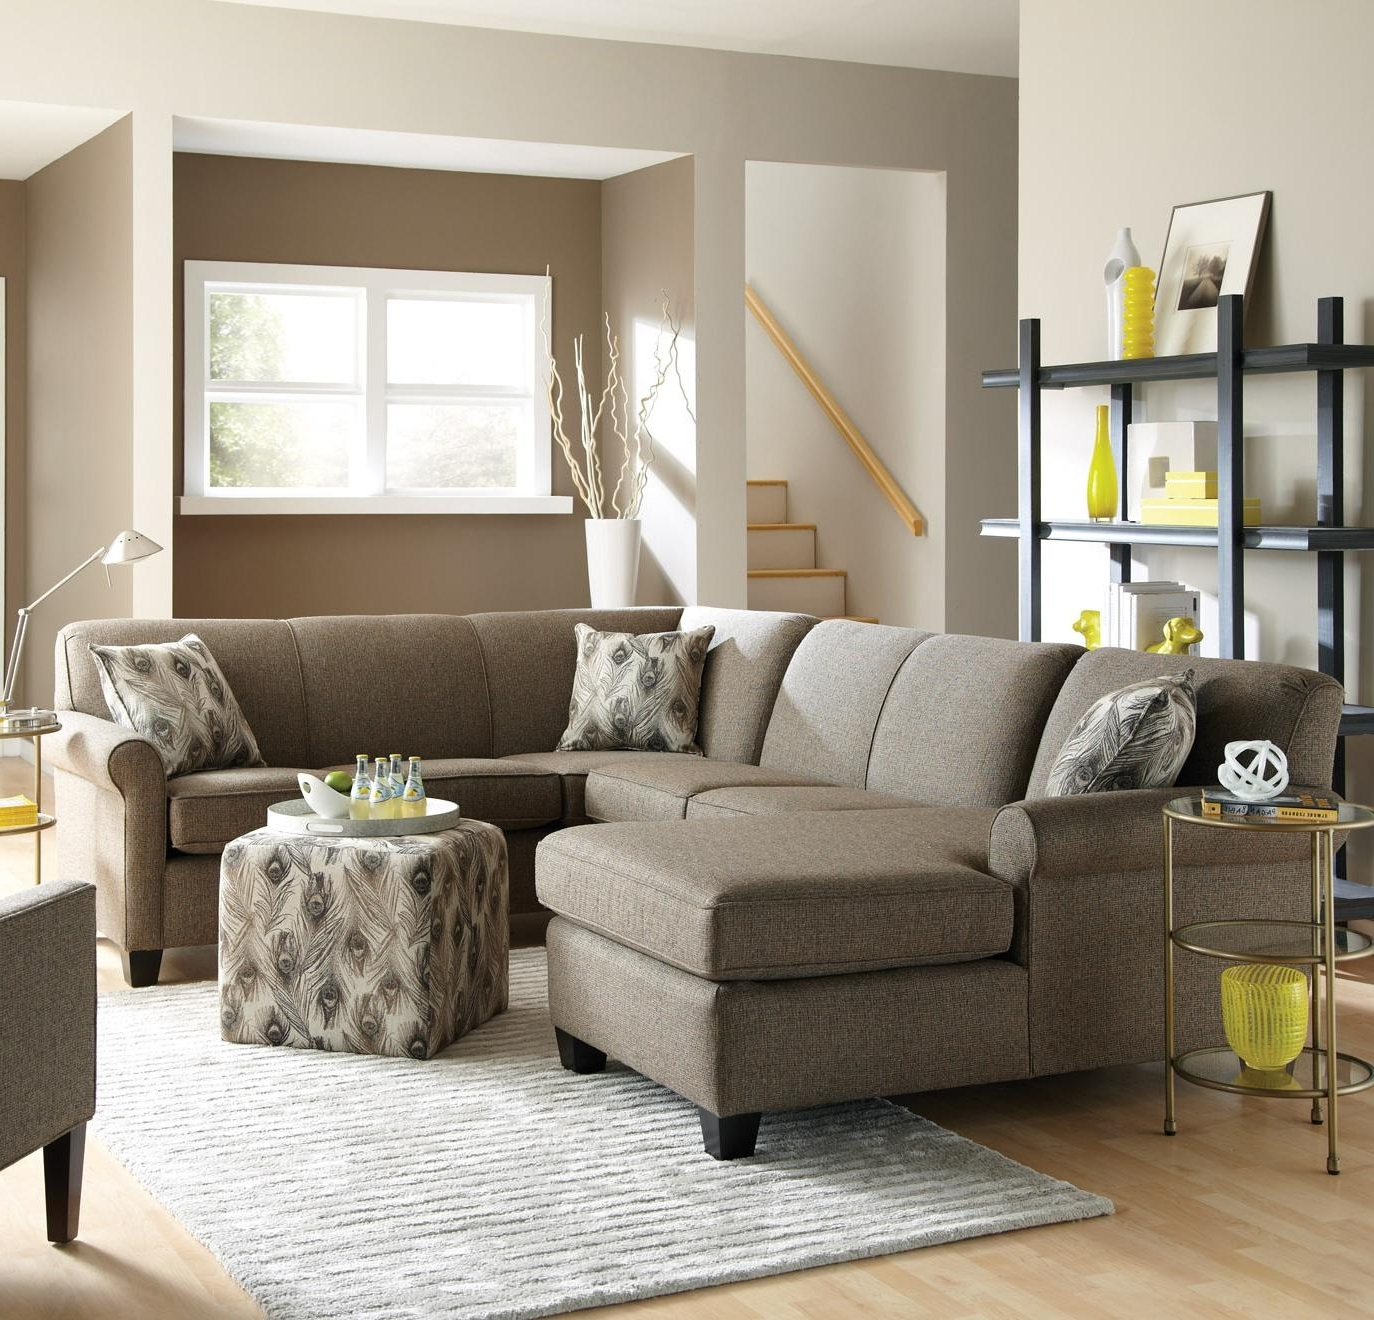 Best And Newest England Sectional Sofas Inside England Angie Long Sectional Sofa With Chaise – Ahfa – Sofa (View 7 of 20)